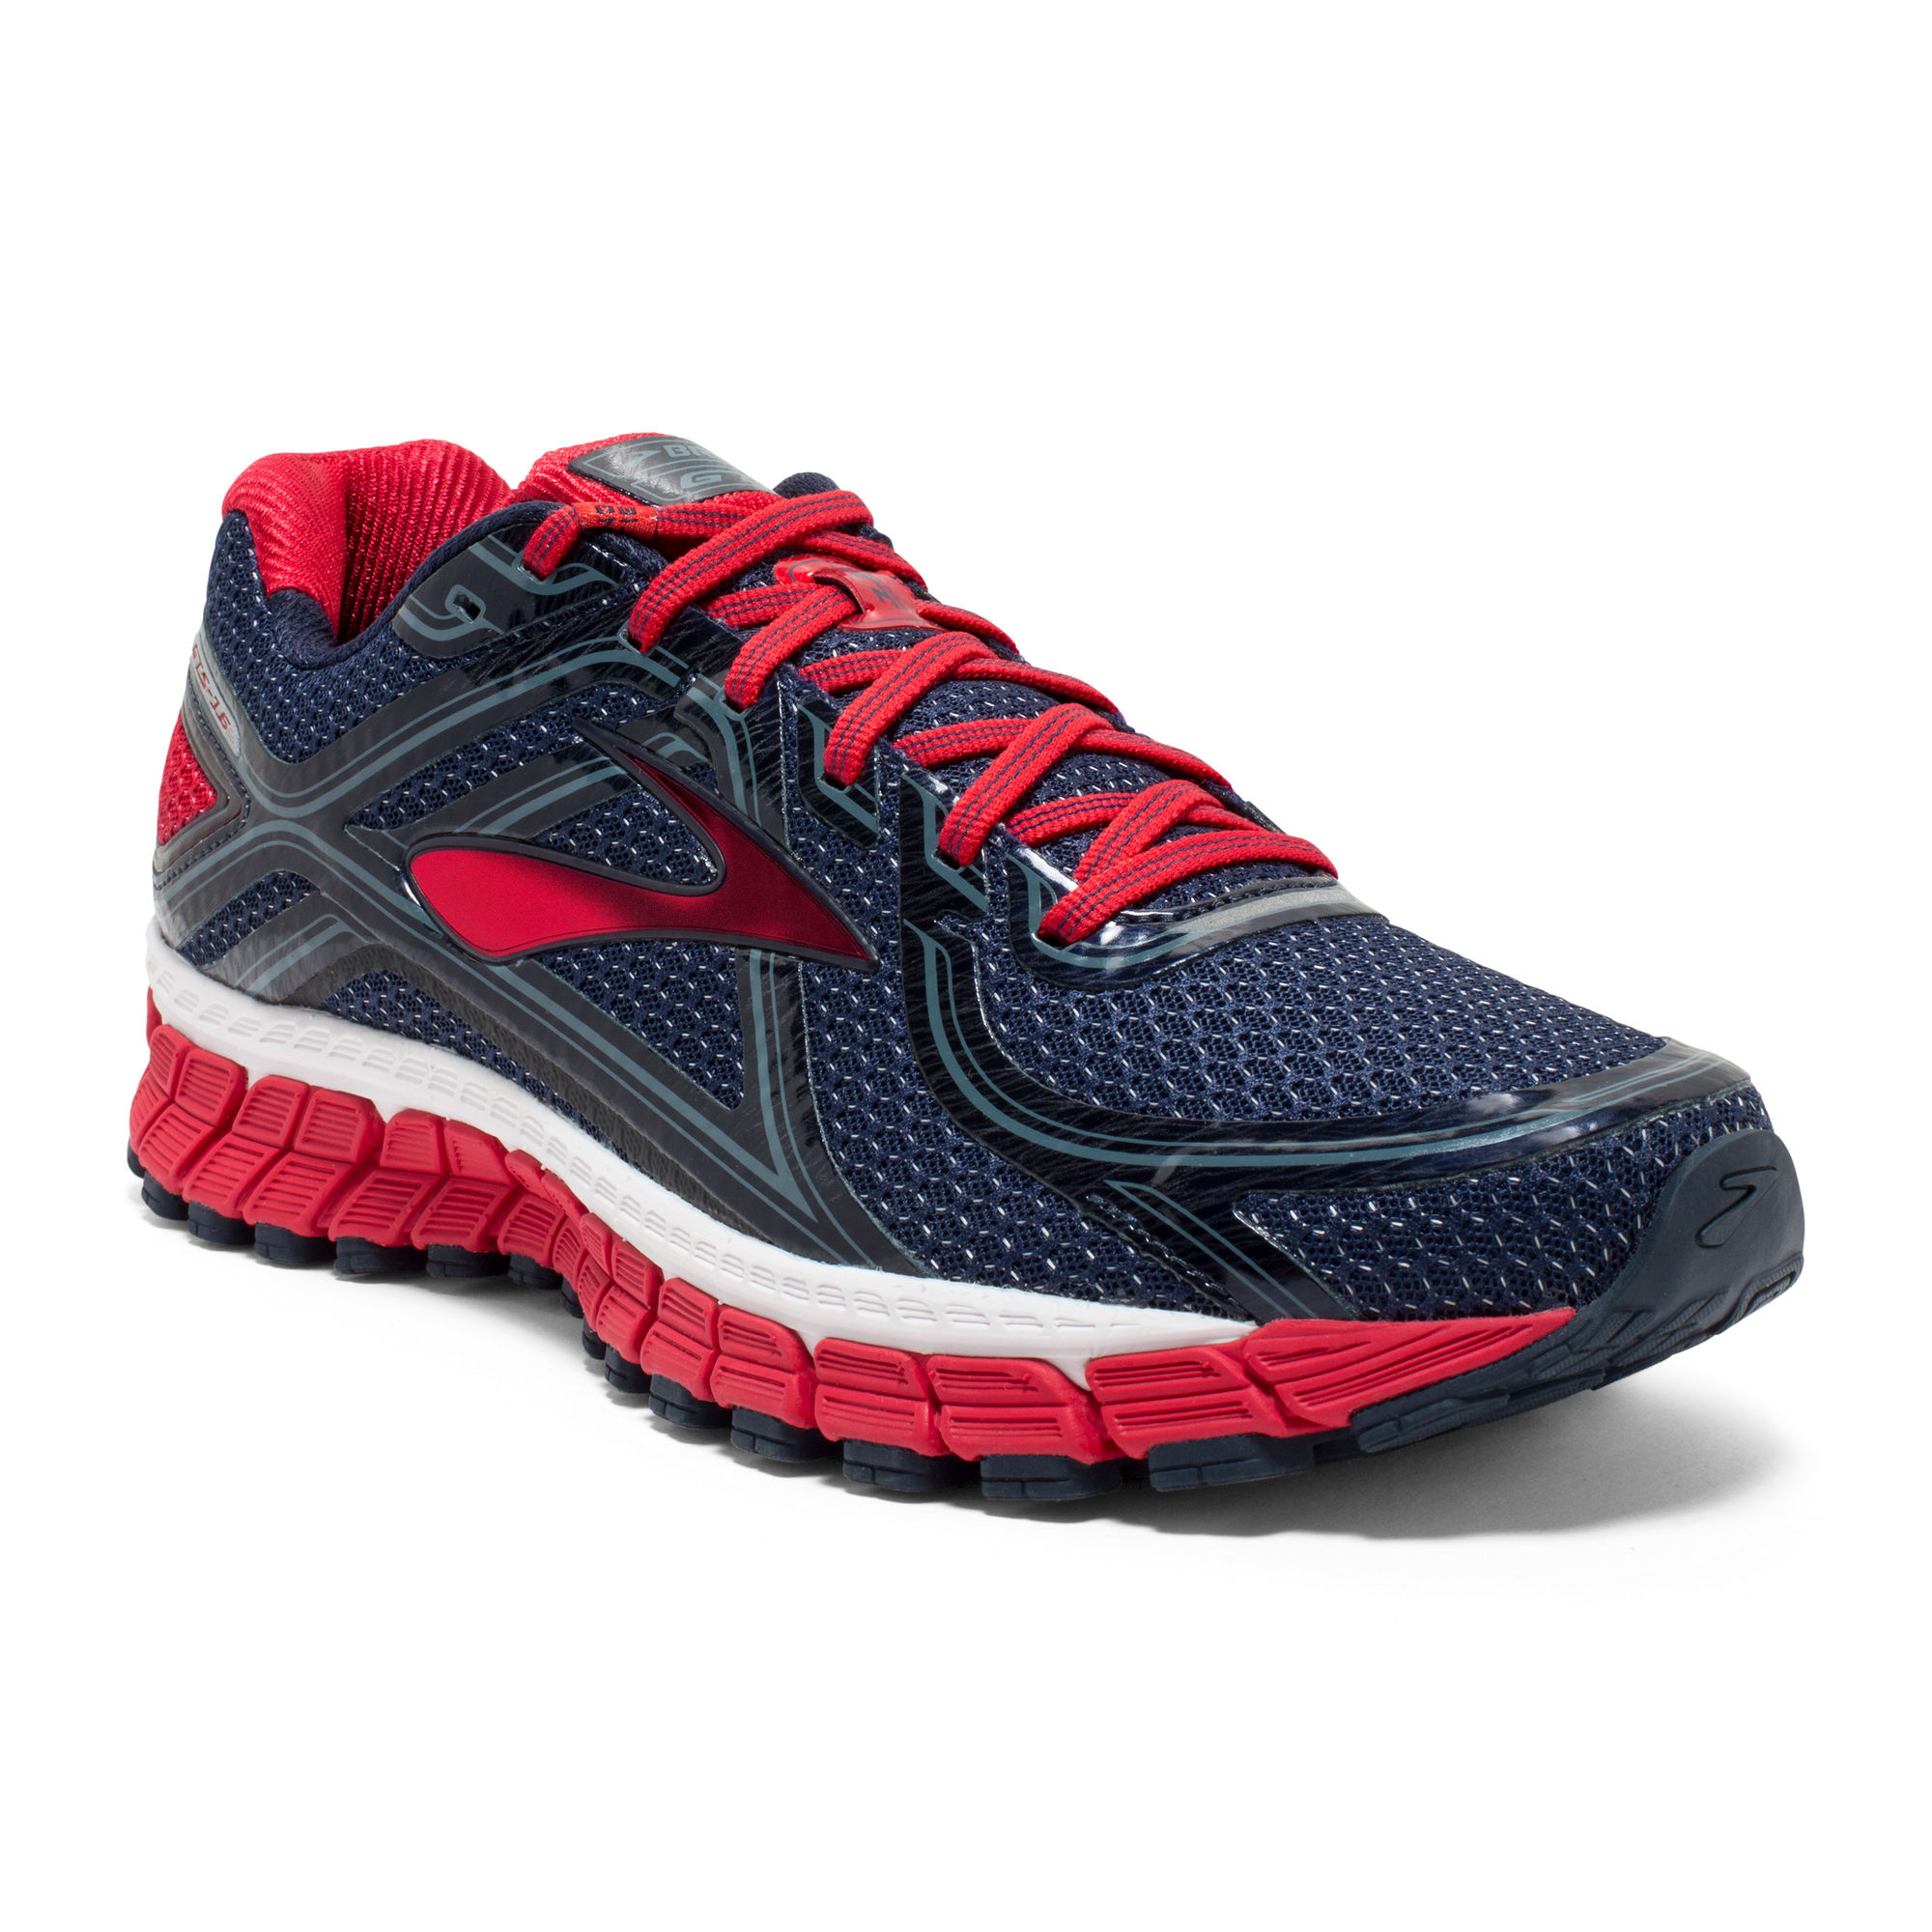 Brooks Adrenaline GTS 16 in Peacoat/Red/Blue